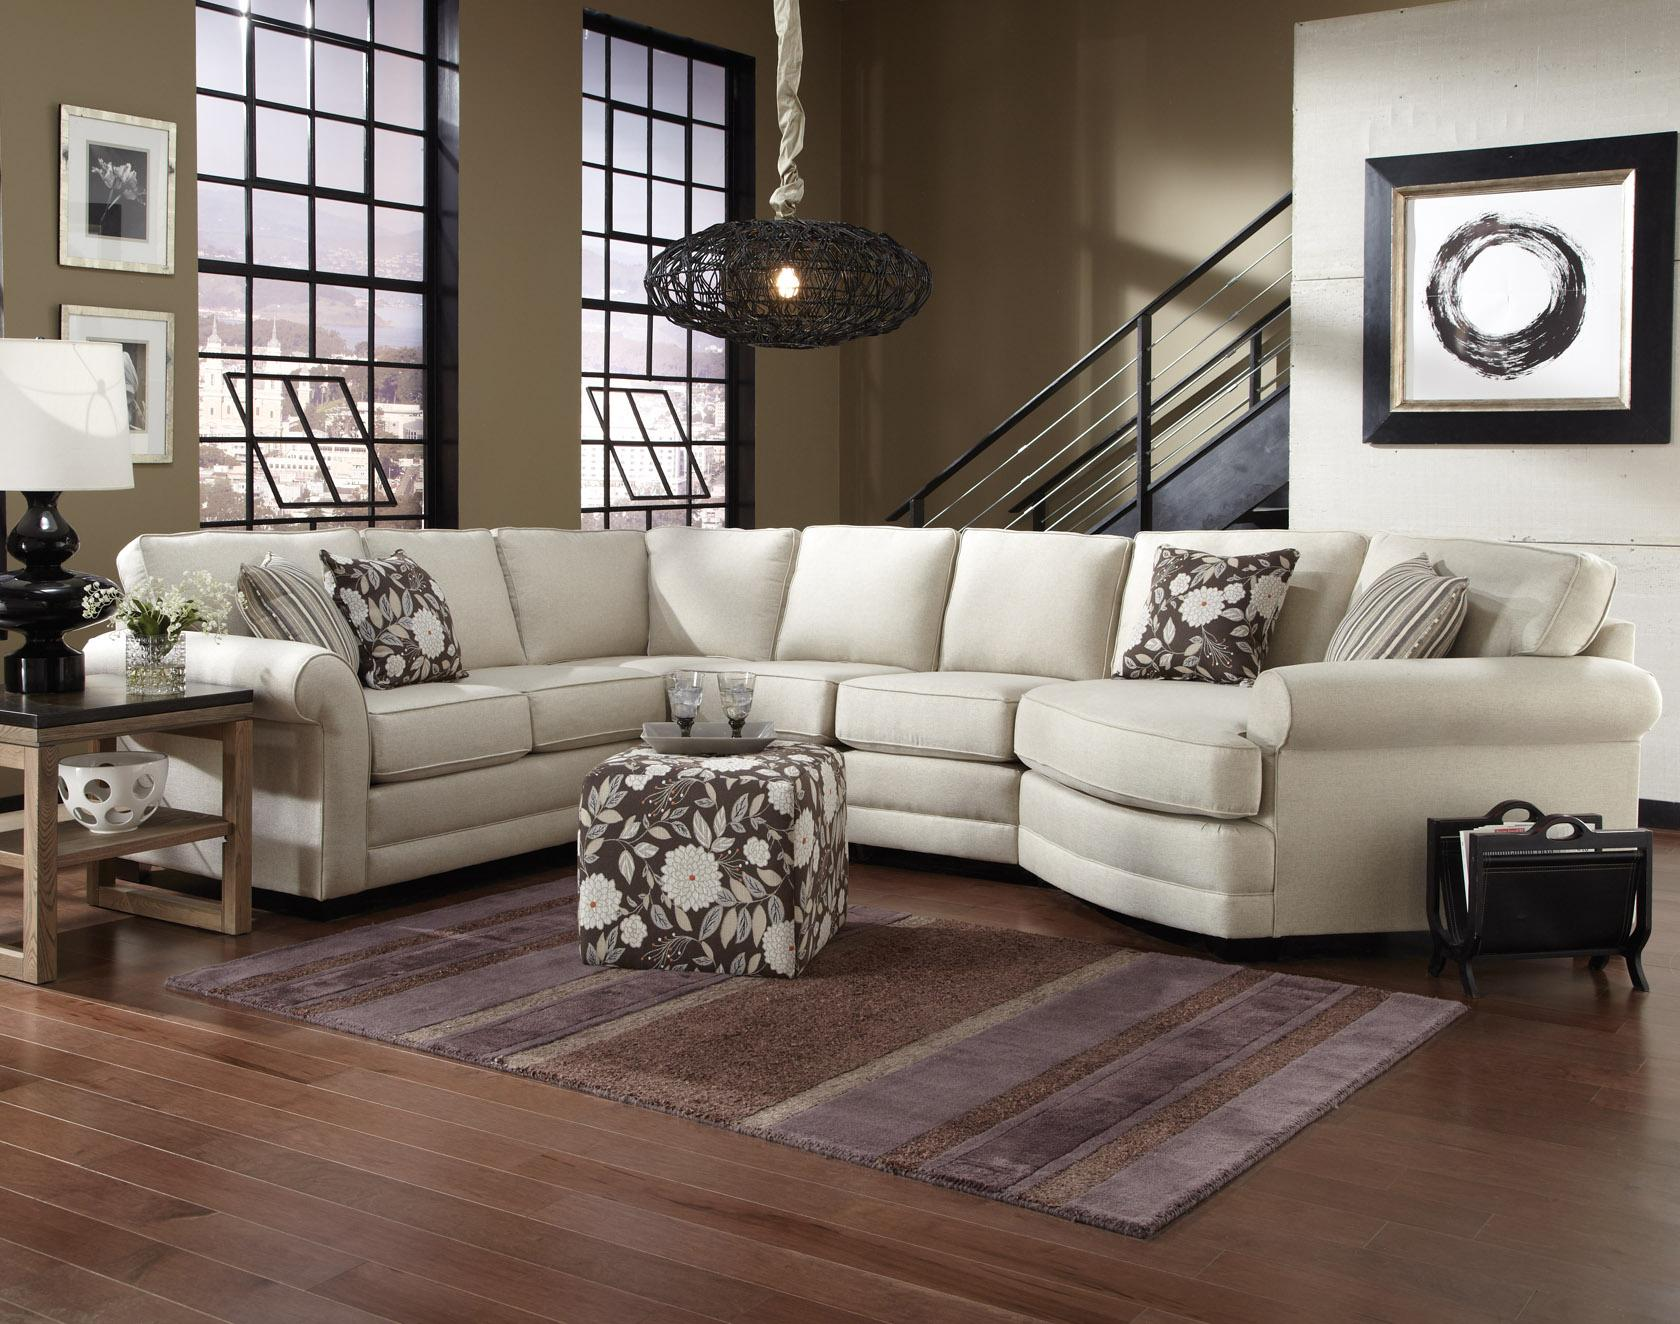 Charmant England Brantley 5 Seat Sectional Sofa Cuddler   Item Number: 5630 28+22